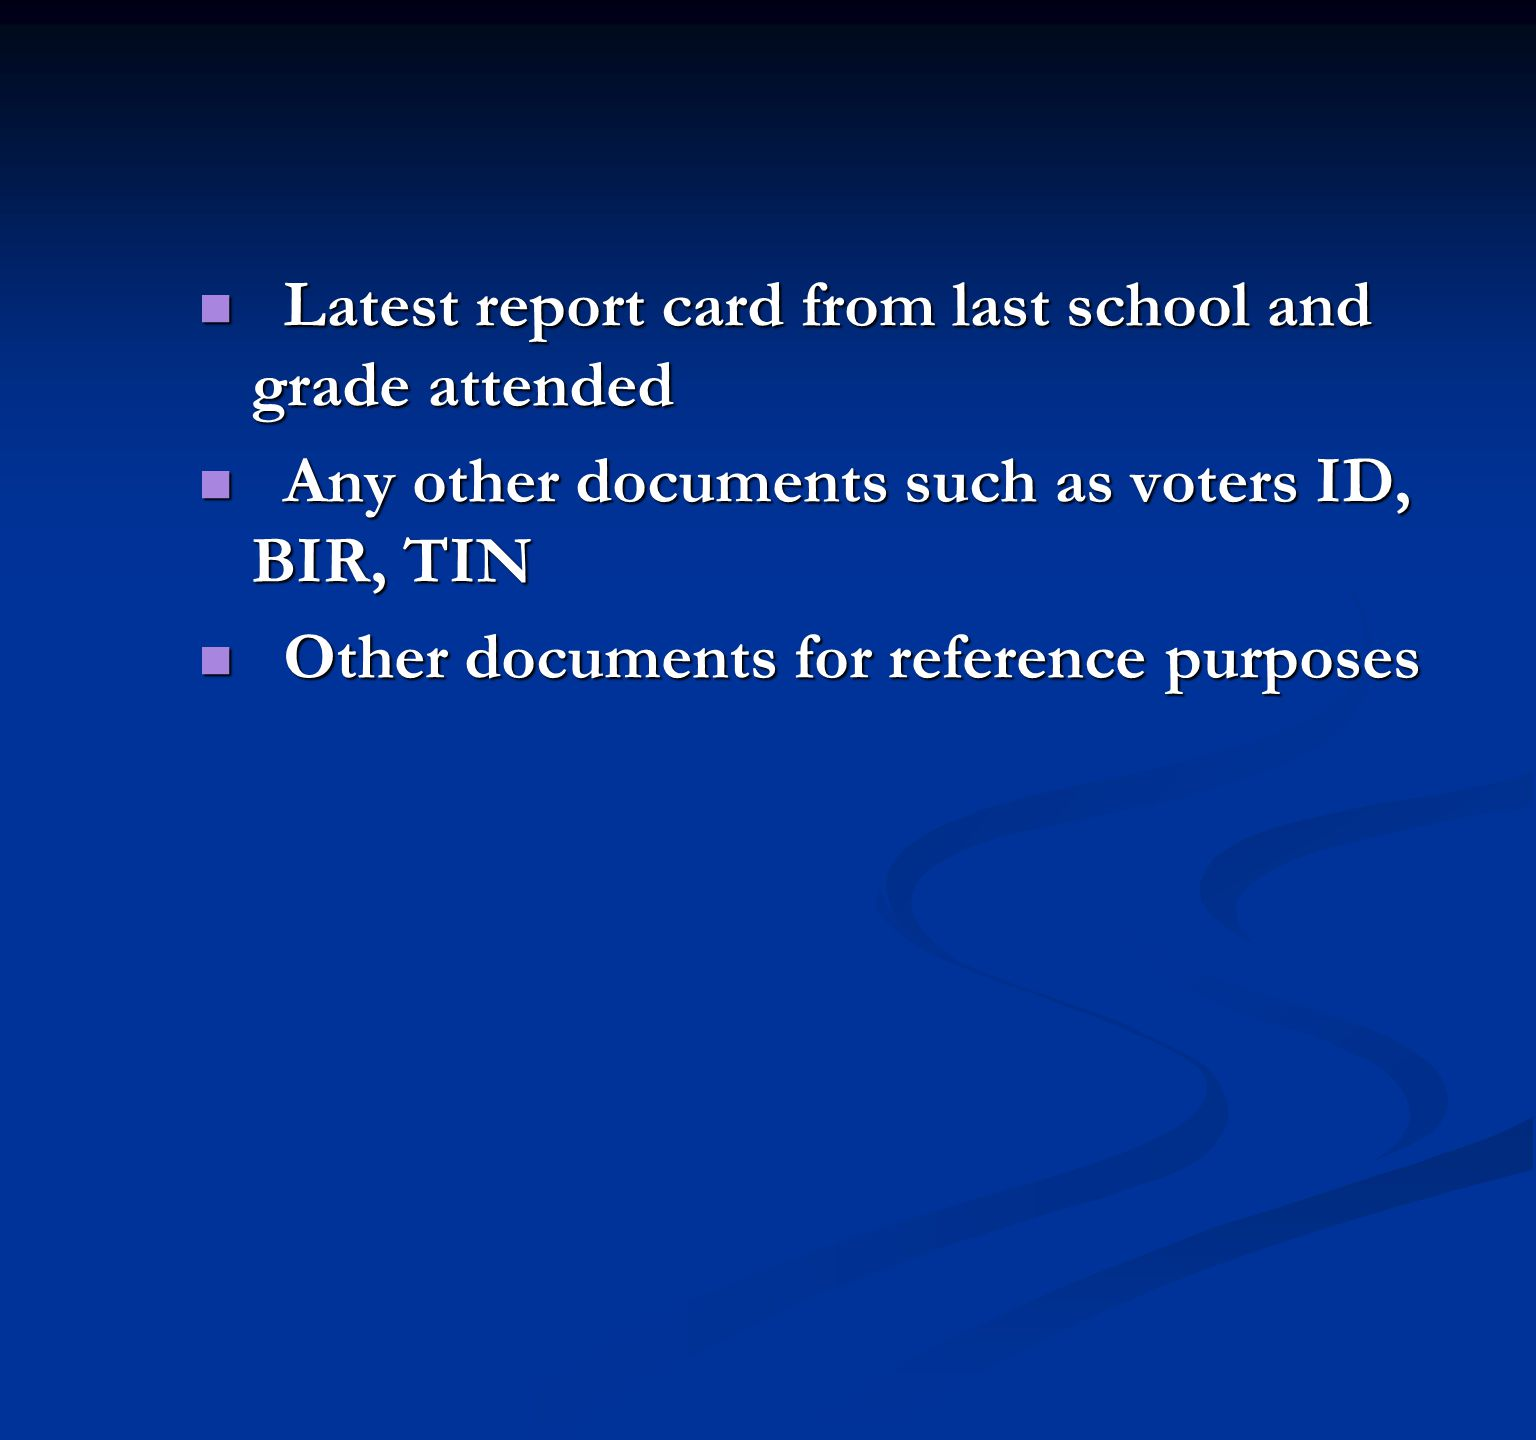 Latest report card from last school and grade attended Latest report card from last school and grade attended Any other documents such as voters ID, B